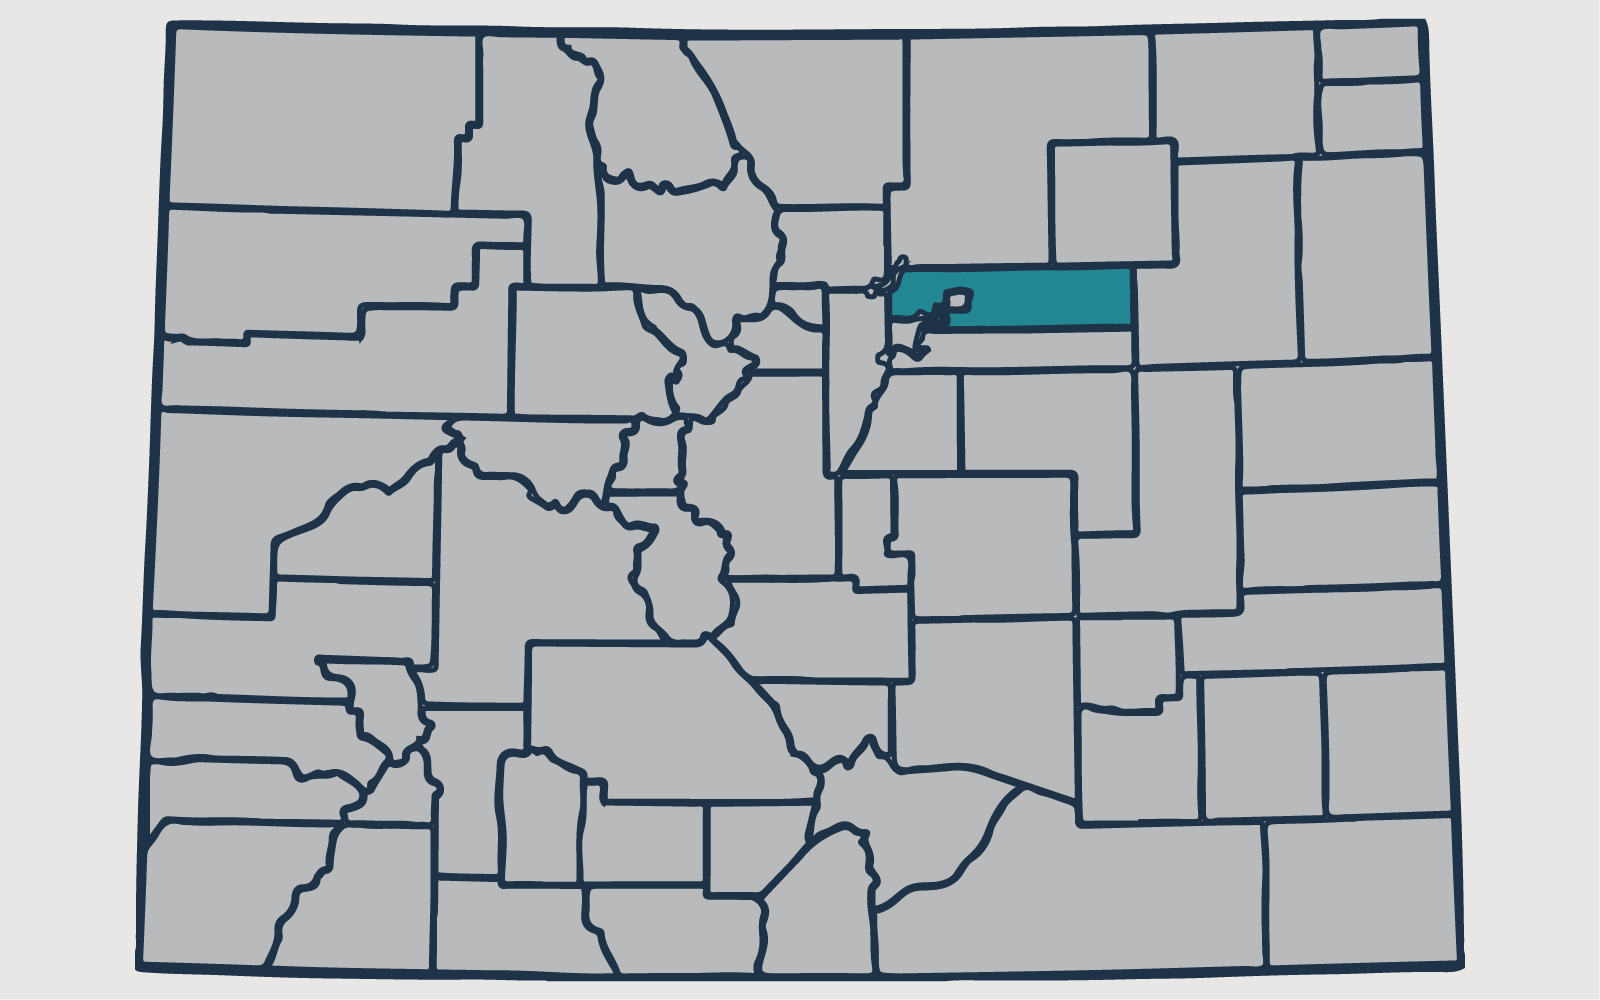 ADAMS COUNTY, Colorado - Your health and satisfaction are important to us. We are located in Littleton, Colorado and are pleased to provide our professional, honest, and affordable radon testing and mitigation services to happy and satisfied customers all along the front range of our beautiful State of Colorado.